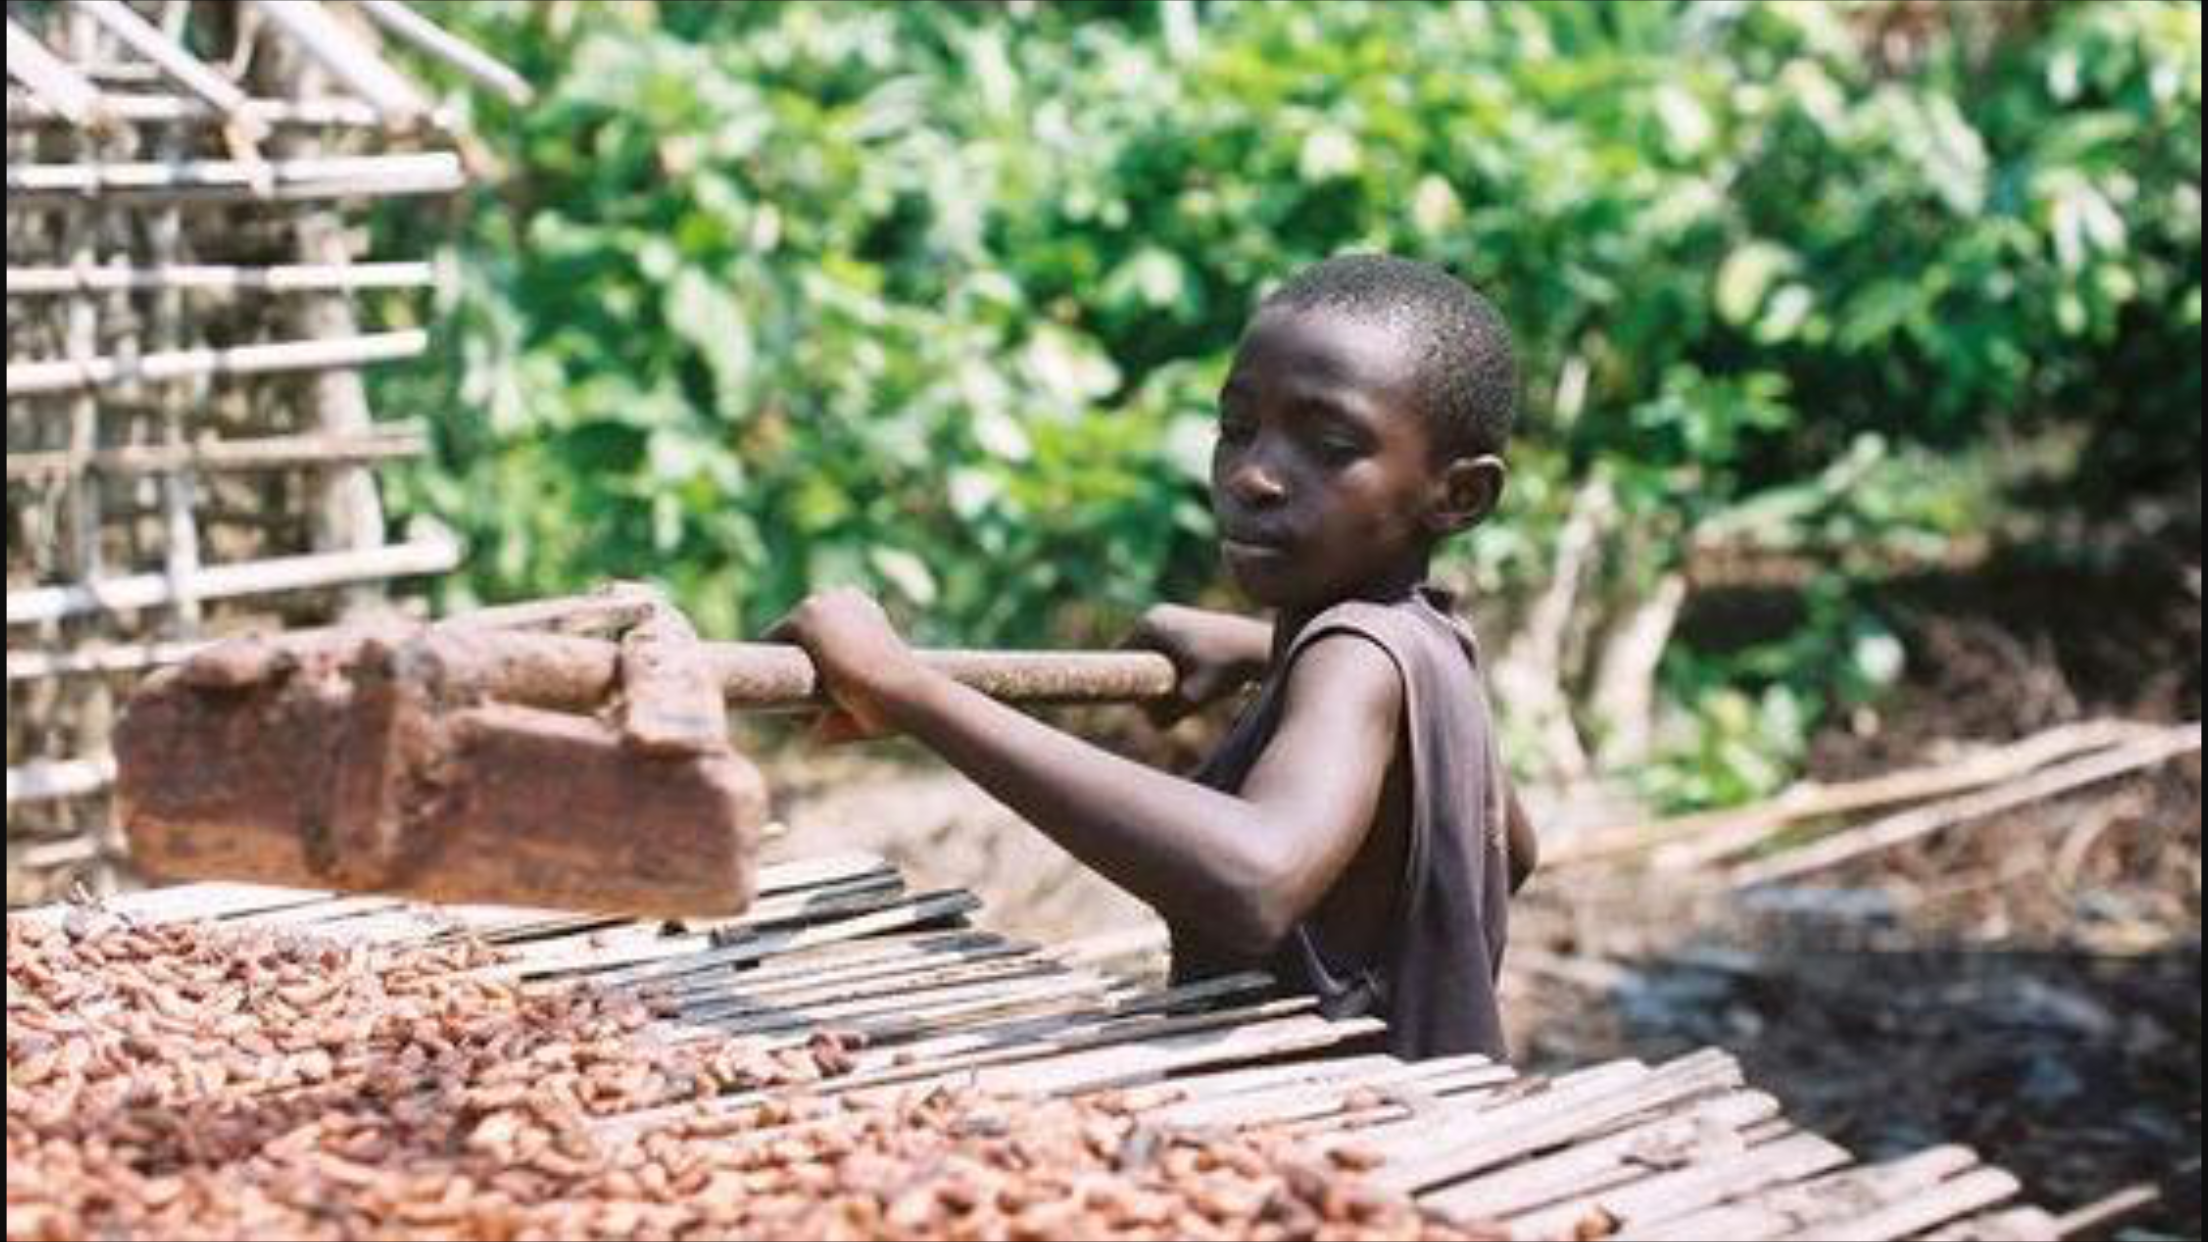 slavery in the chocolate factory The guardian of 19 children freed from slavery by the ivorian  while fowler's  chocolate condemns child slavery, it continues to use ivory coast  at the  foxconn factory in china, where electronics are manufactured, (ie.